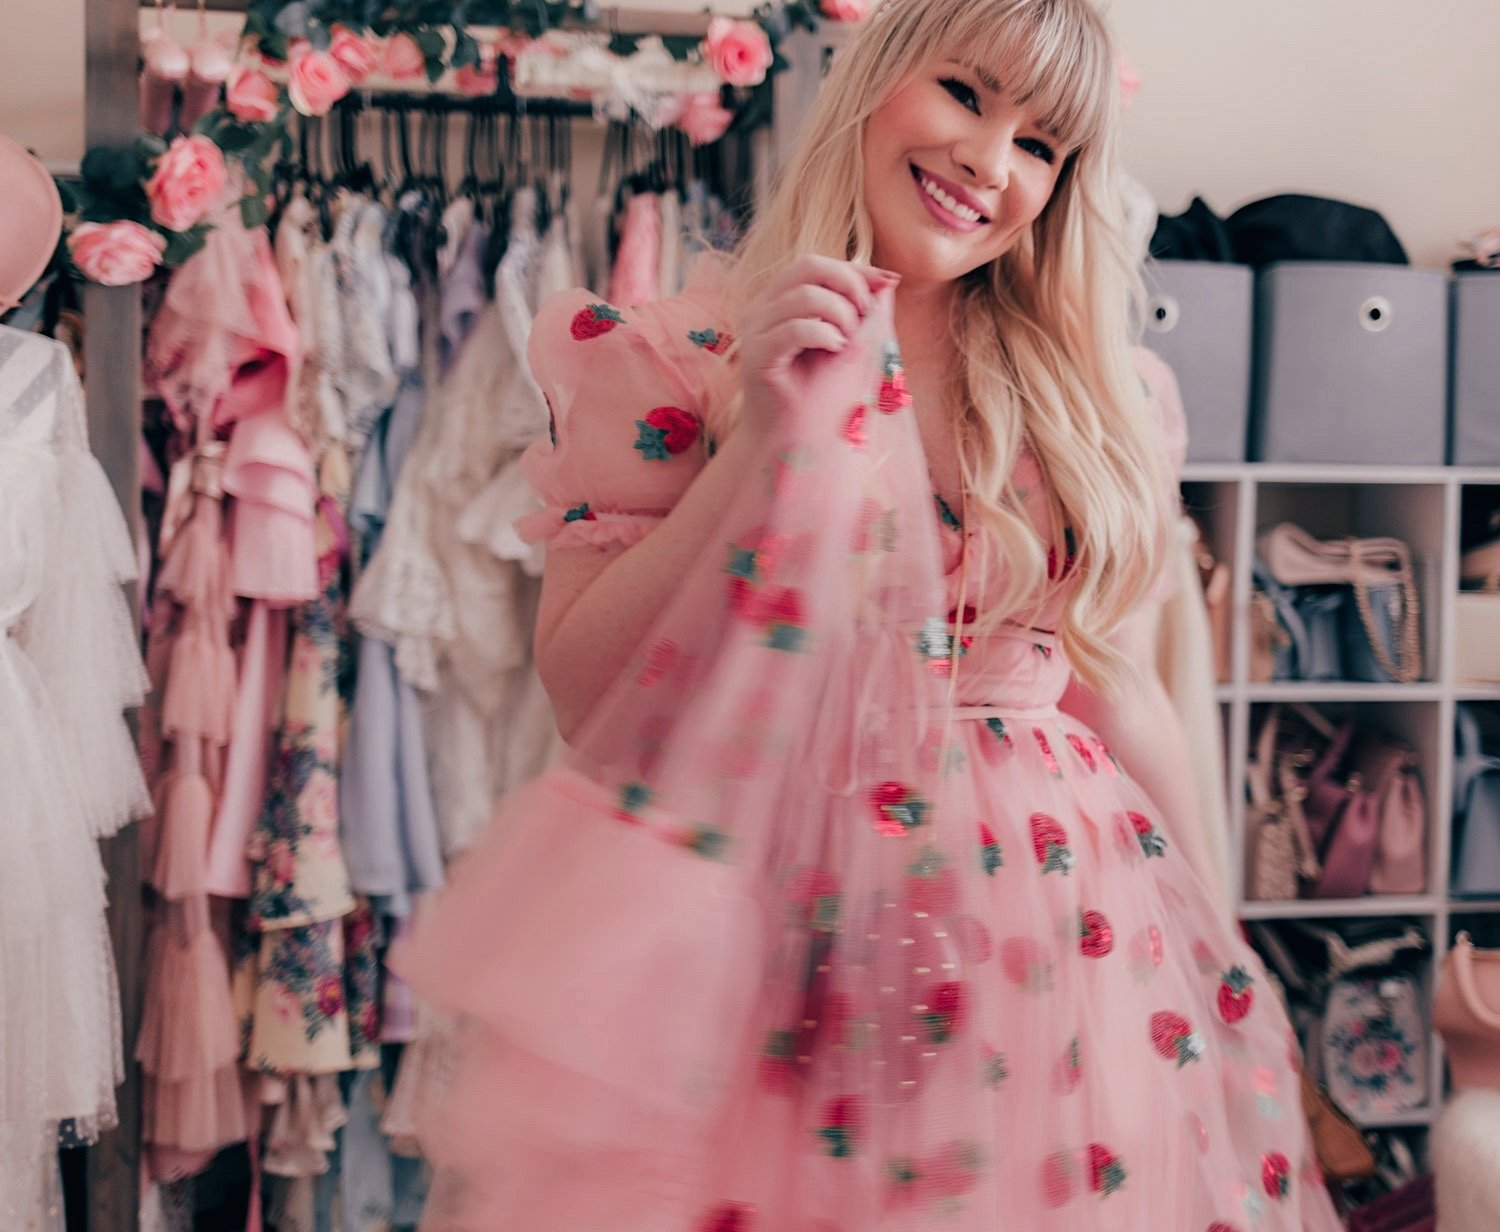 Fashion Blogger Elizabeth Hugen of Lizzie in Lace shares her feminine fashion haul including this stunning strawberry dress dupe!